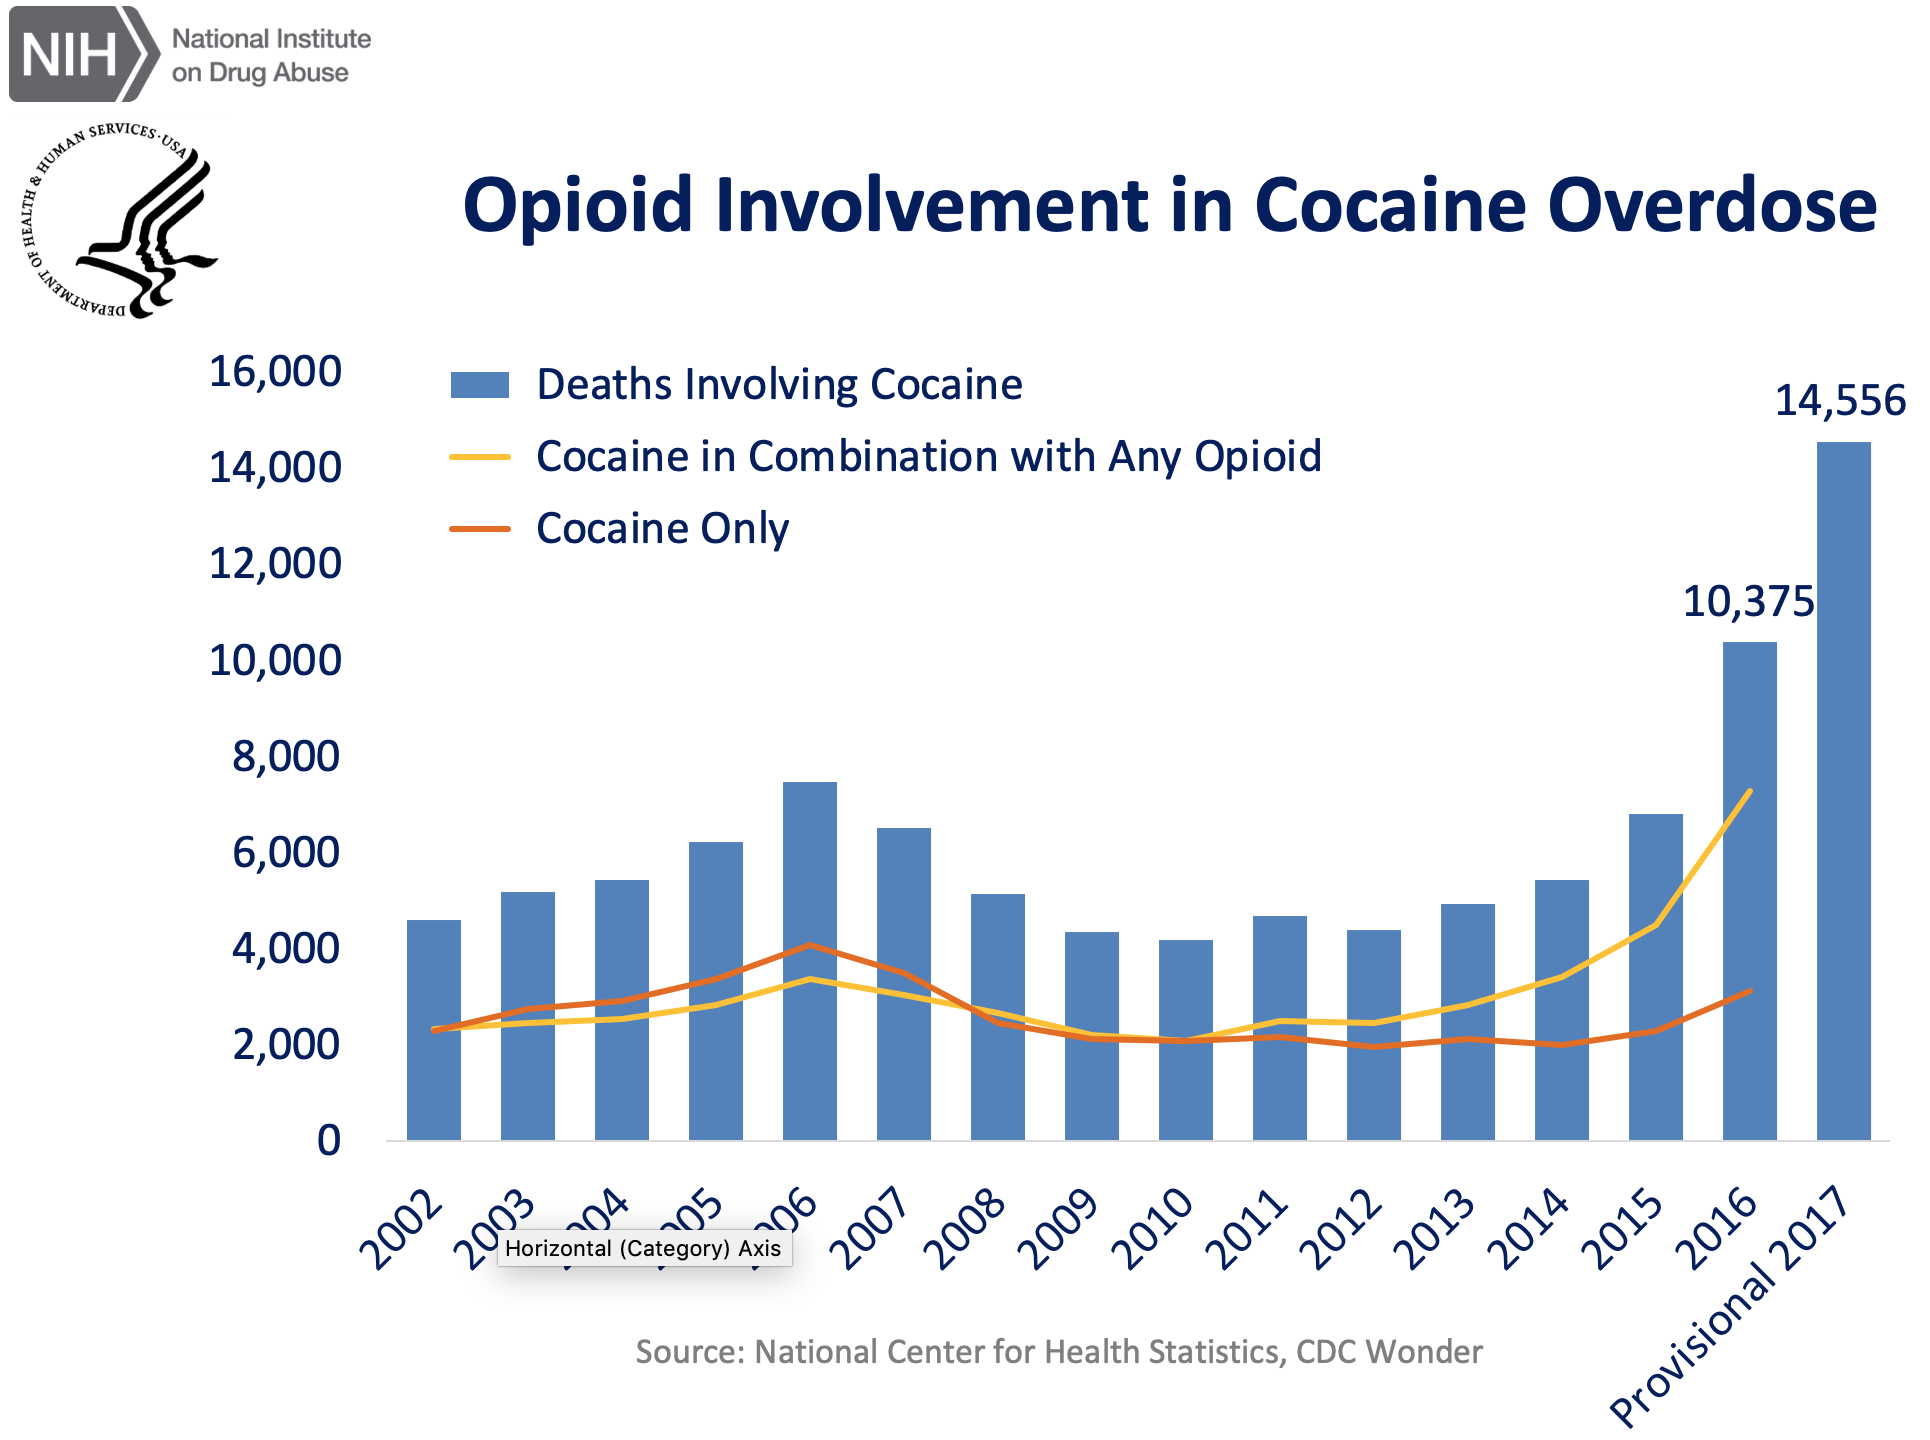 Cocaine overdoses by themselves have been pretty steady. The giant increase is associated with opioid use.